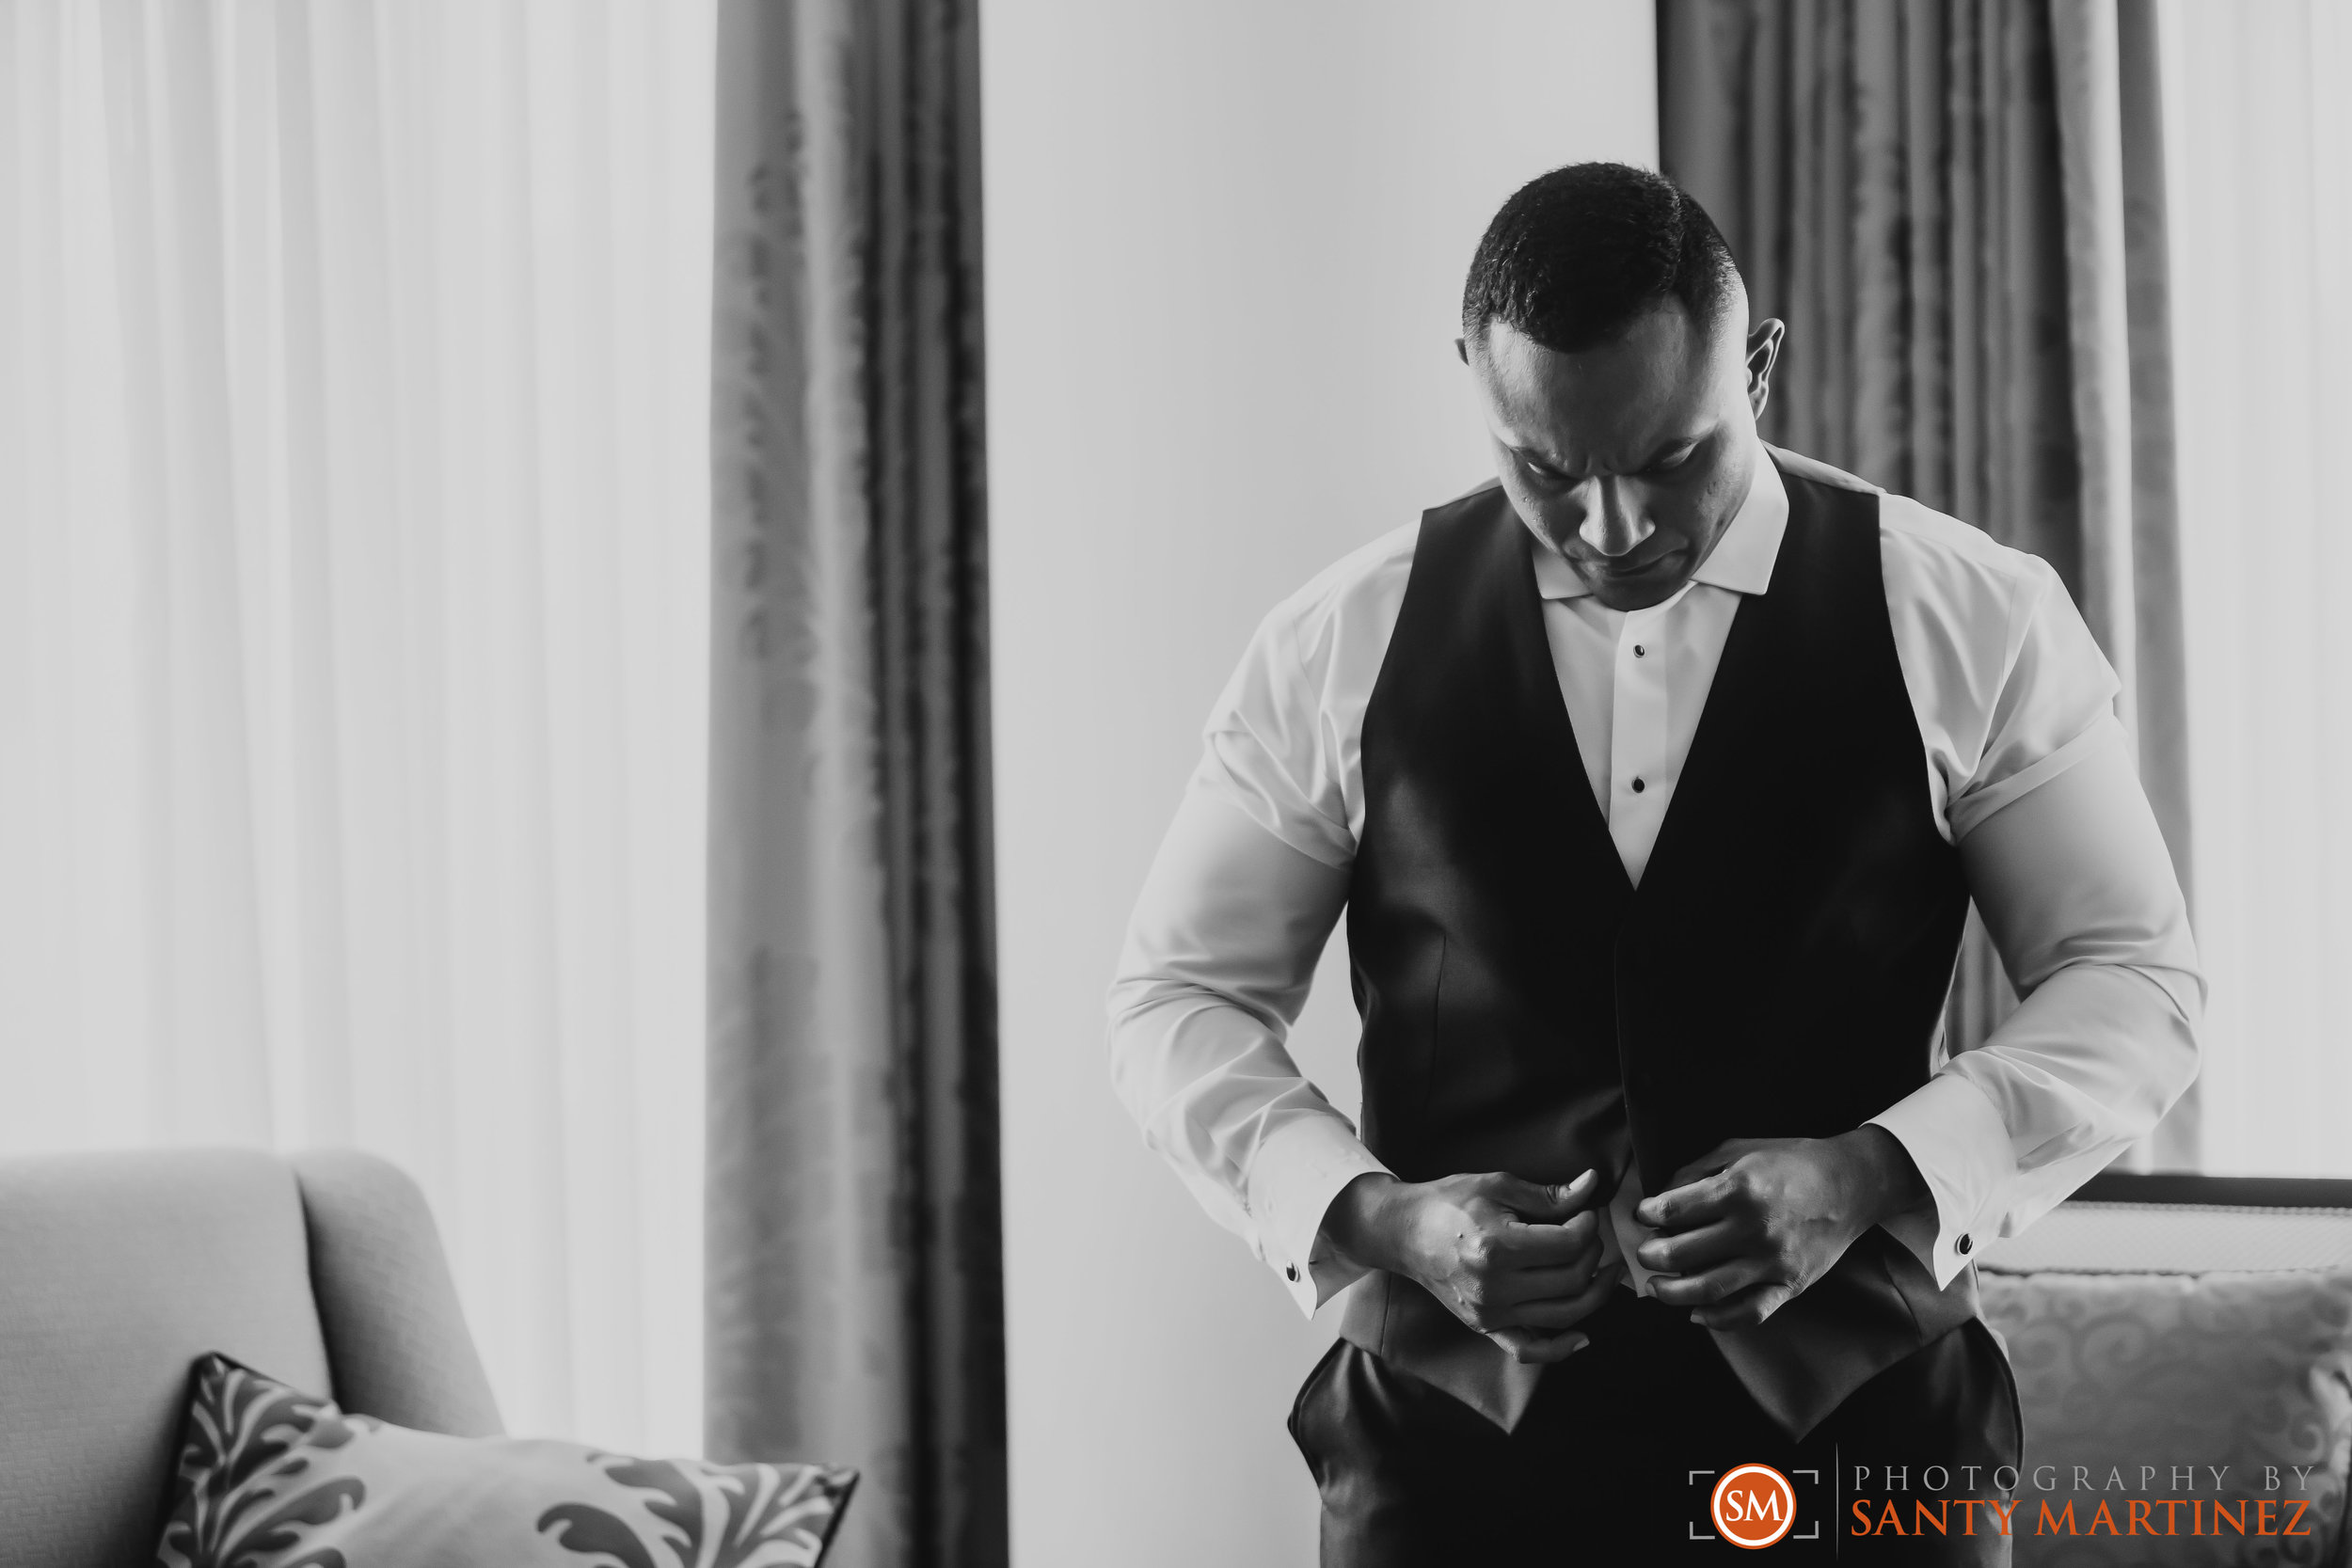 Wedding Ritz Carlton Coconut Grove - Santy Martinez-7.jpg